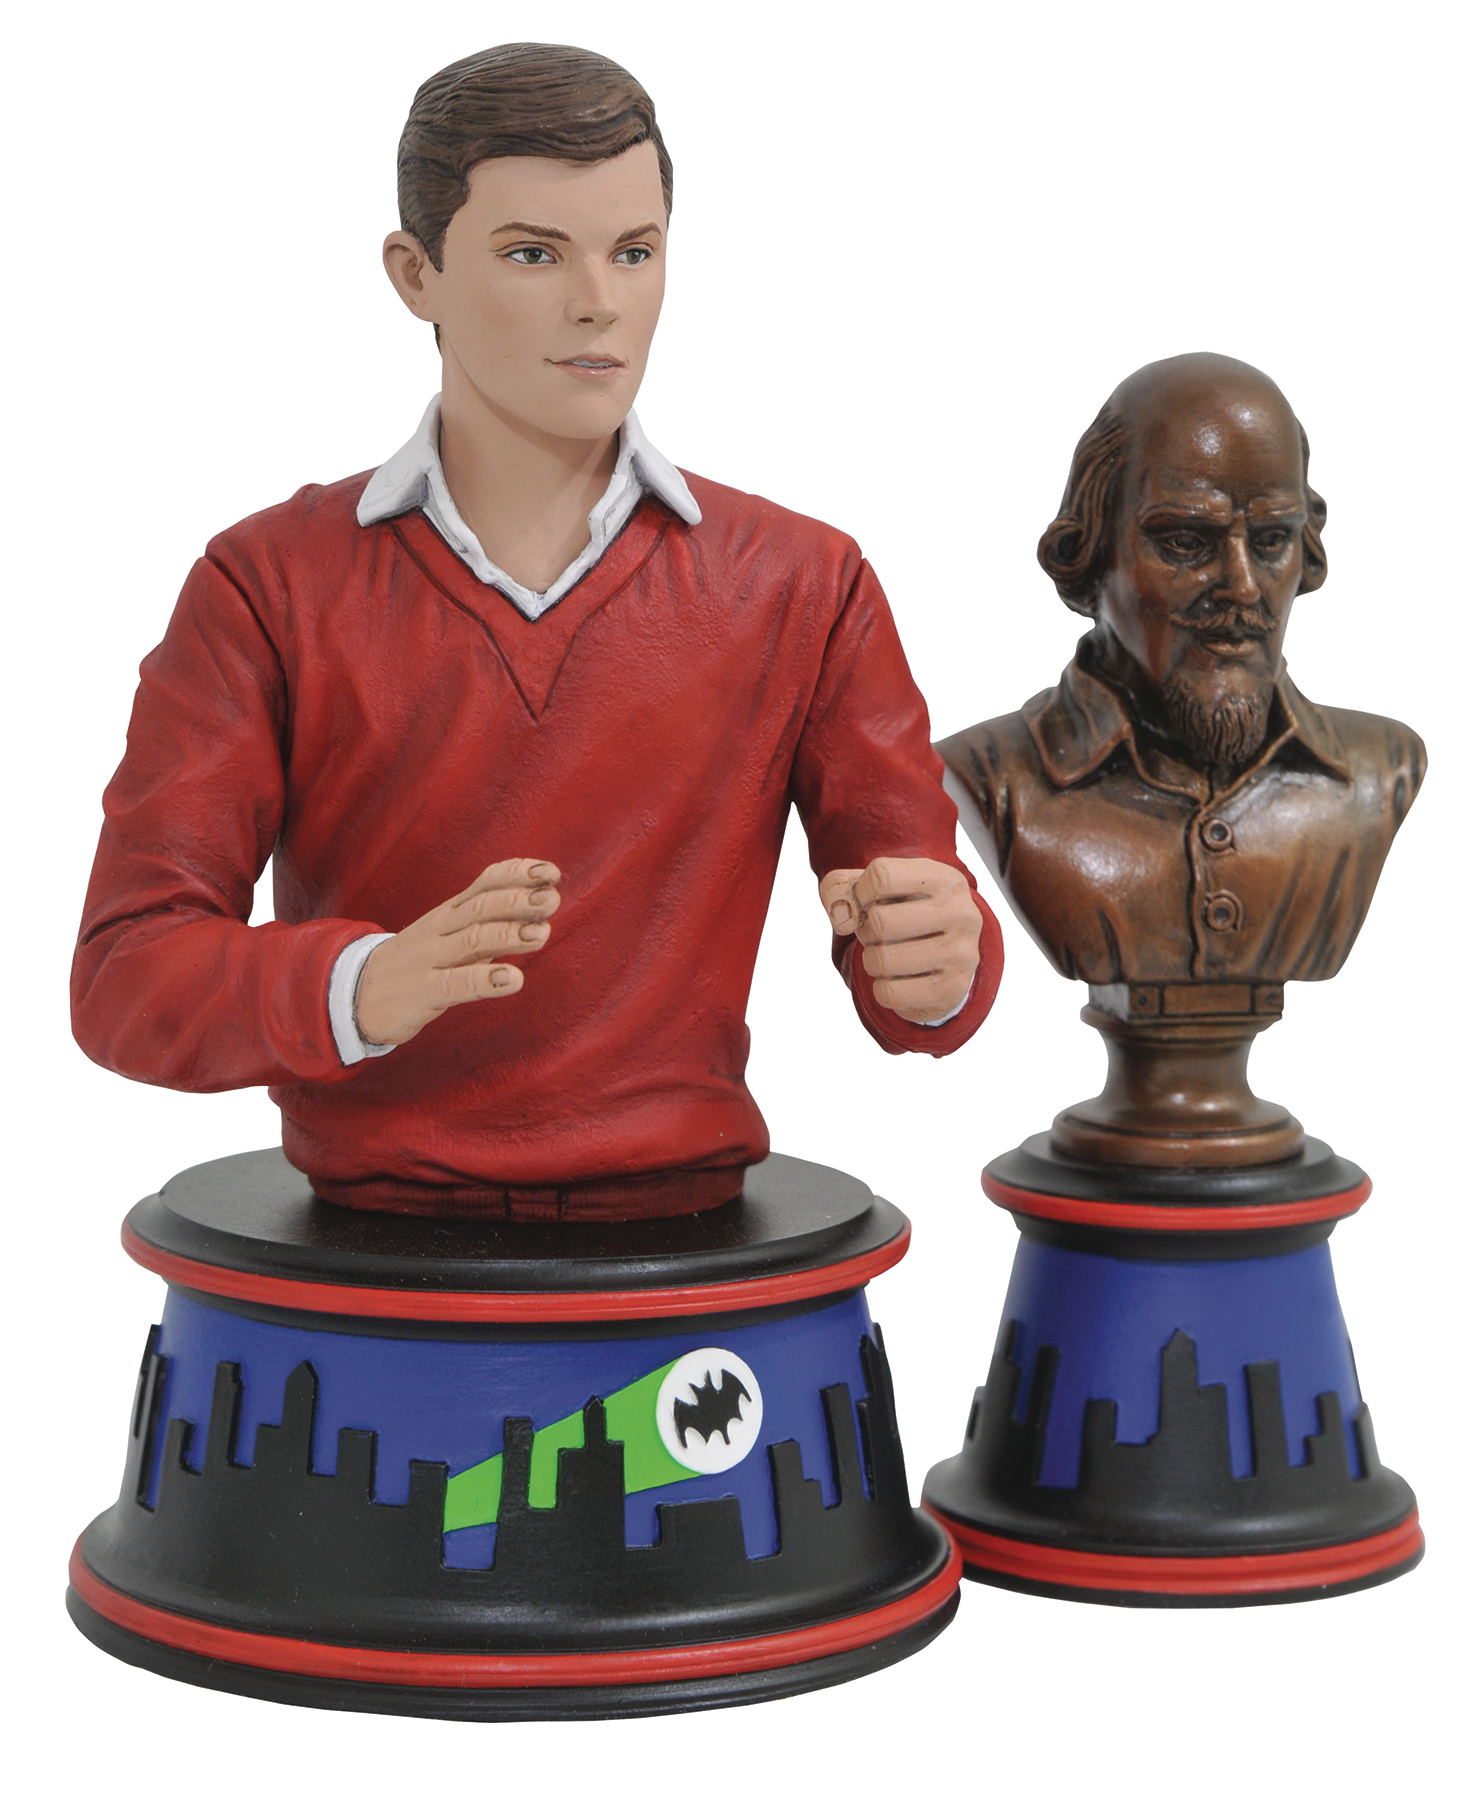 BATMAN 1966 DICK GRAYSON BUST